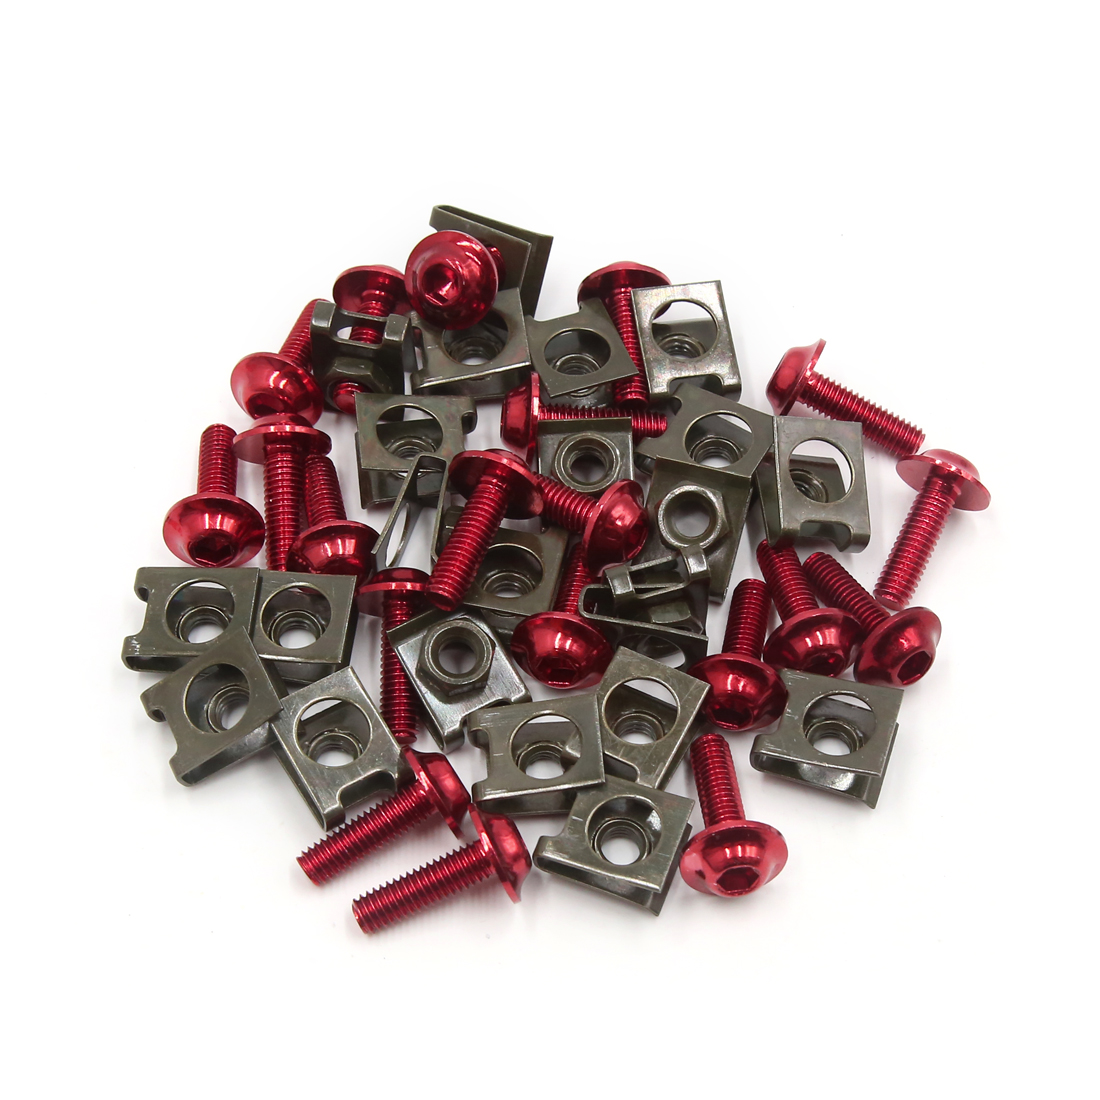 20 Pcs Metal M6 Motorcycle Fairing Bolts Kits Fastener Clips Screw Spring Nuts